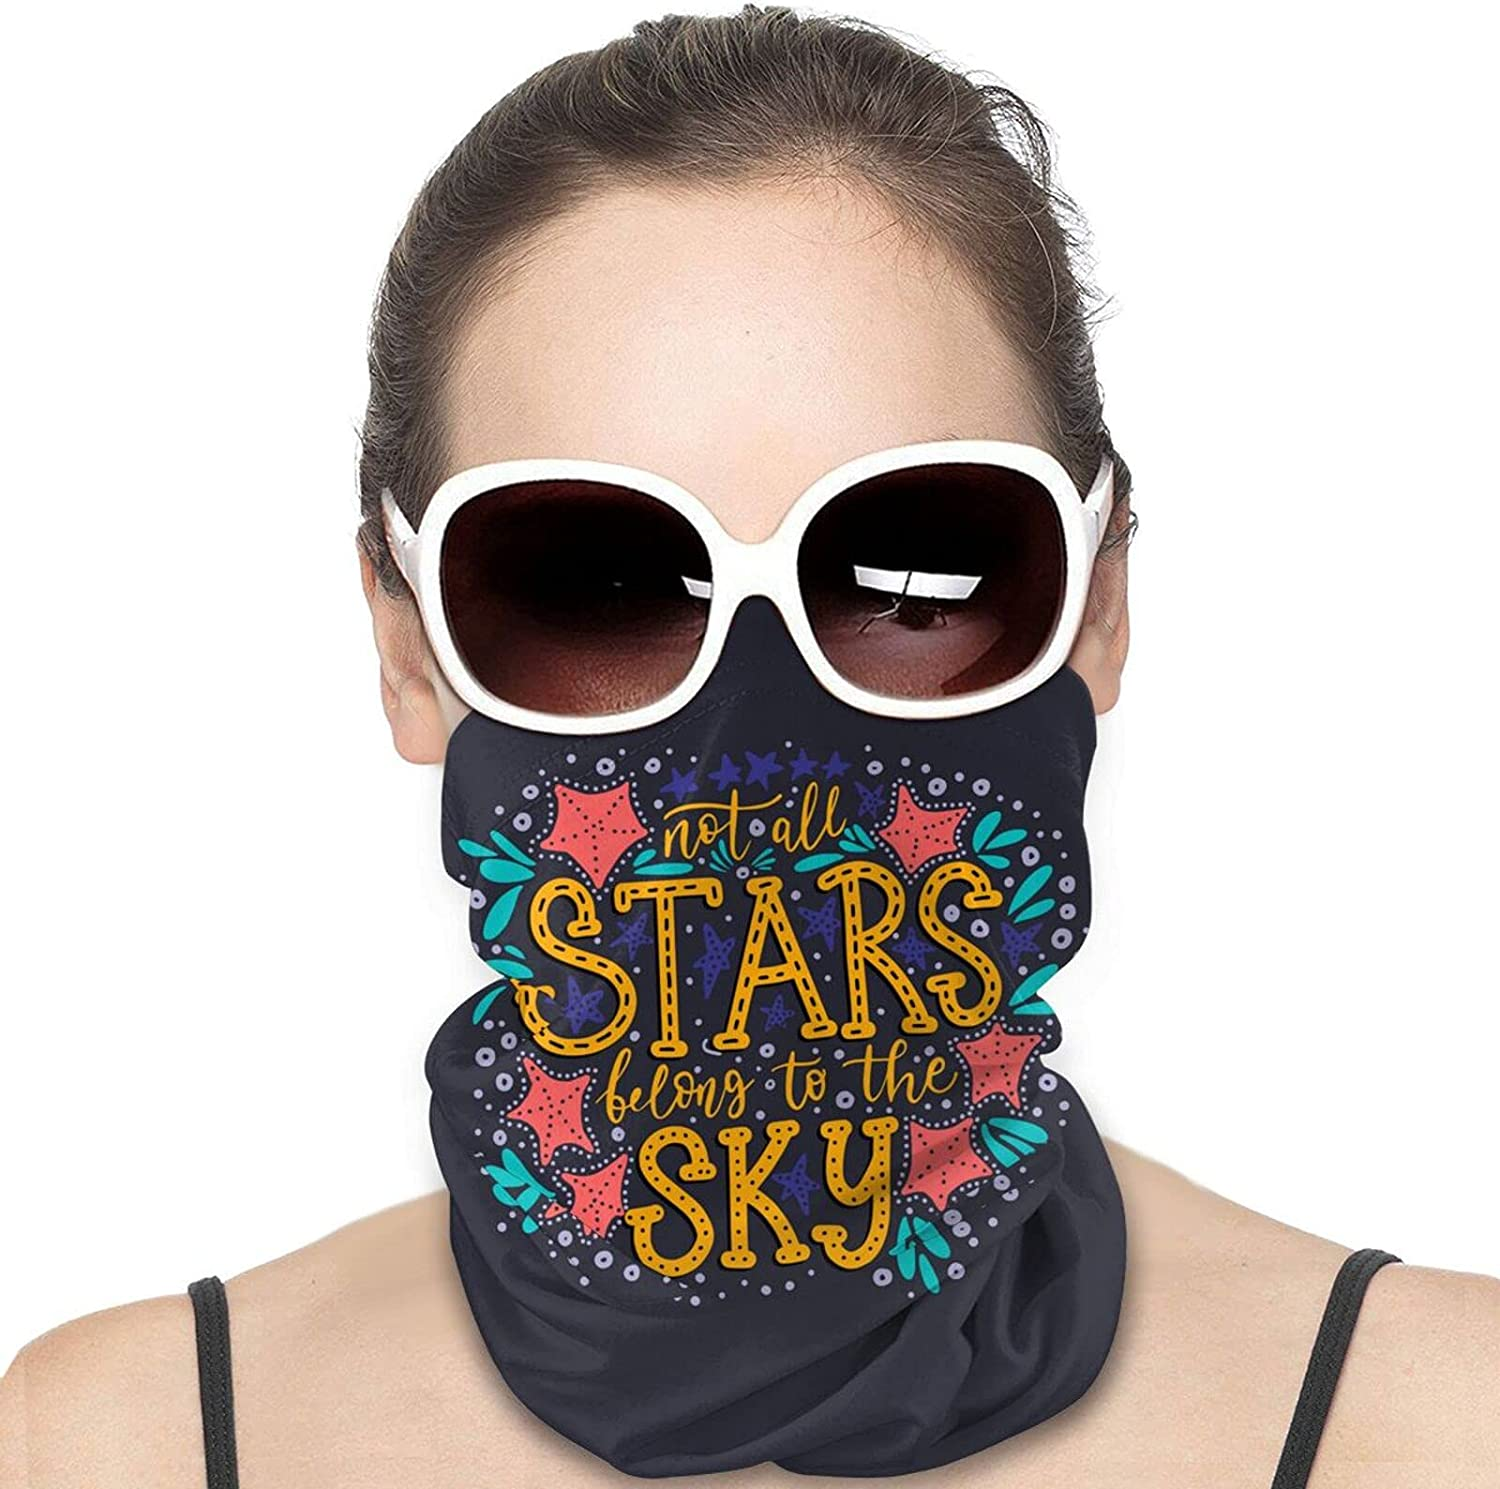 Not All Stars Belong To The Sky Round Neck Gaiter Bandnas Face Cover Uv Protection Prevent bask in Ice Scarf Headbands Perfect for Motorcycle Cycling Running Festival Raves Outdoors